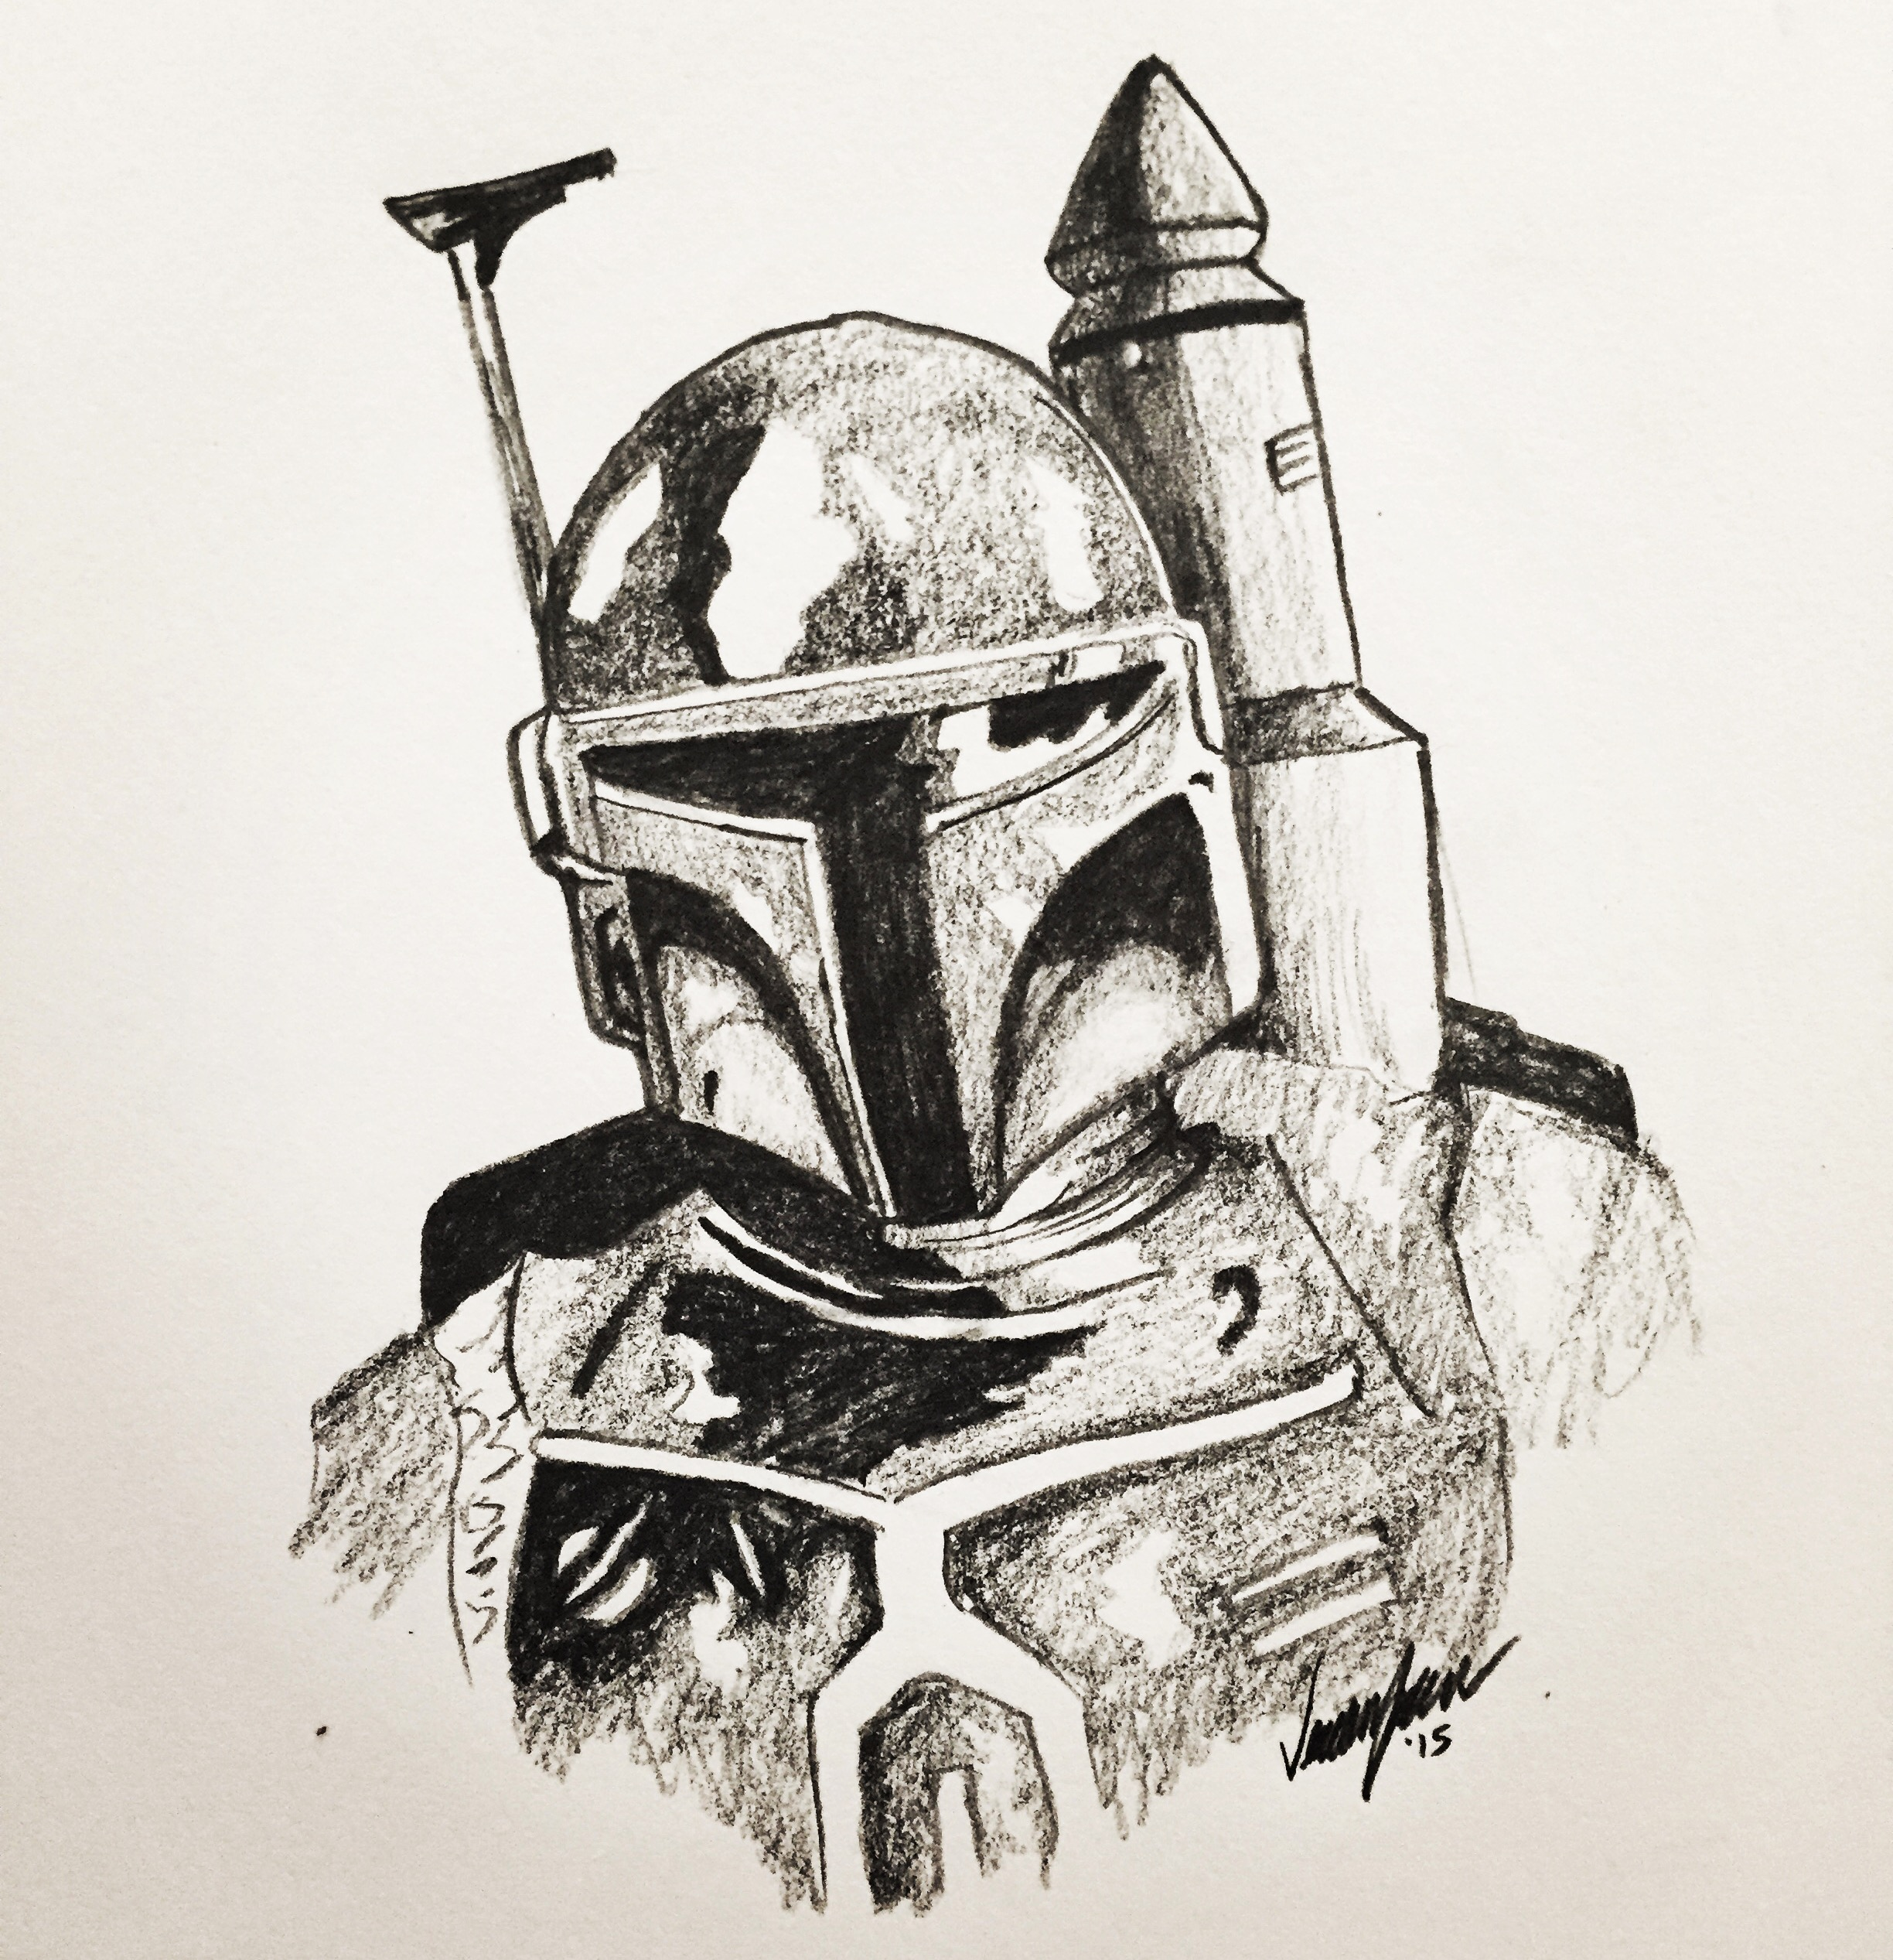 Star Wars Drawing at GetDrawings.com | Free for personal use Star ...